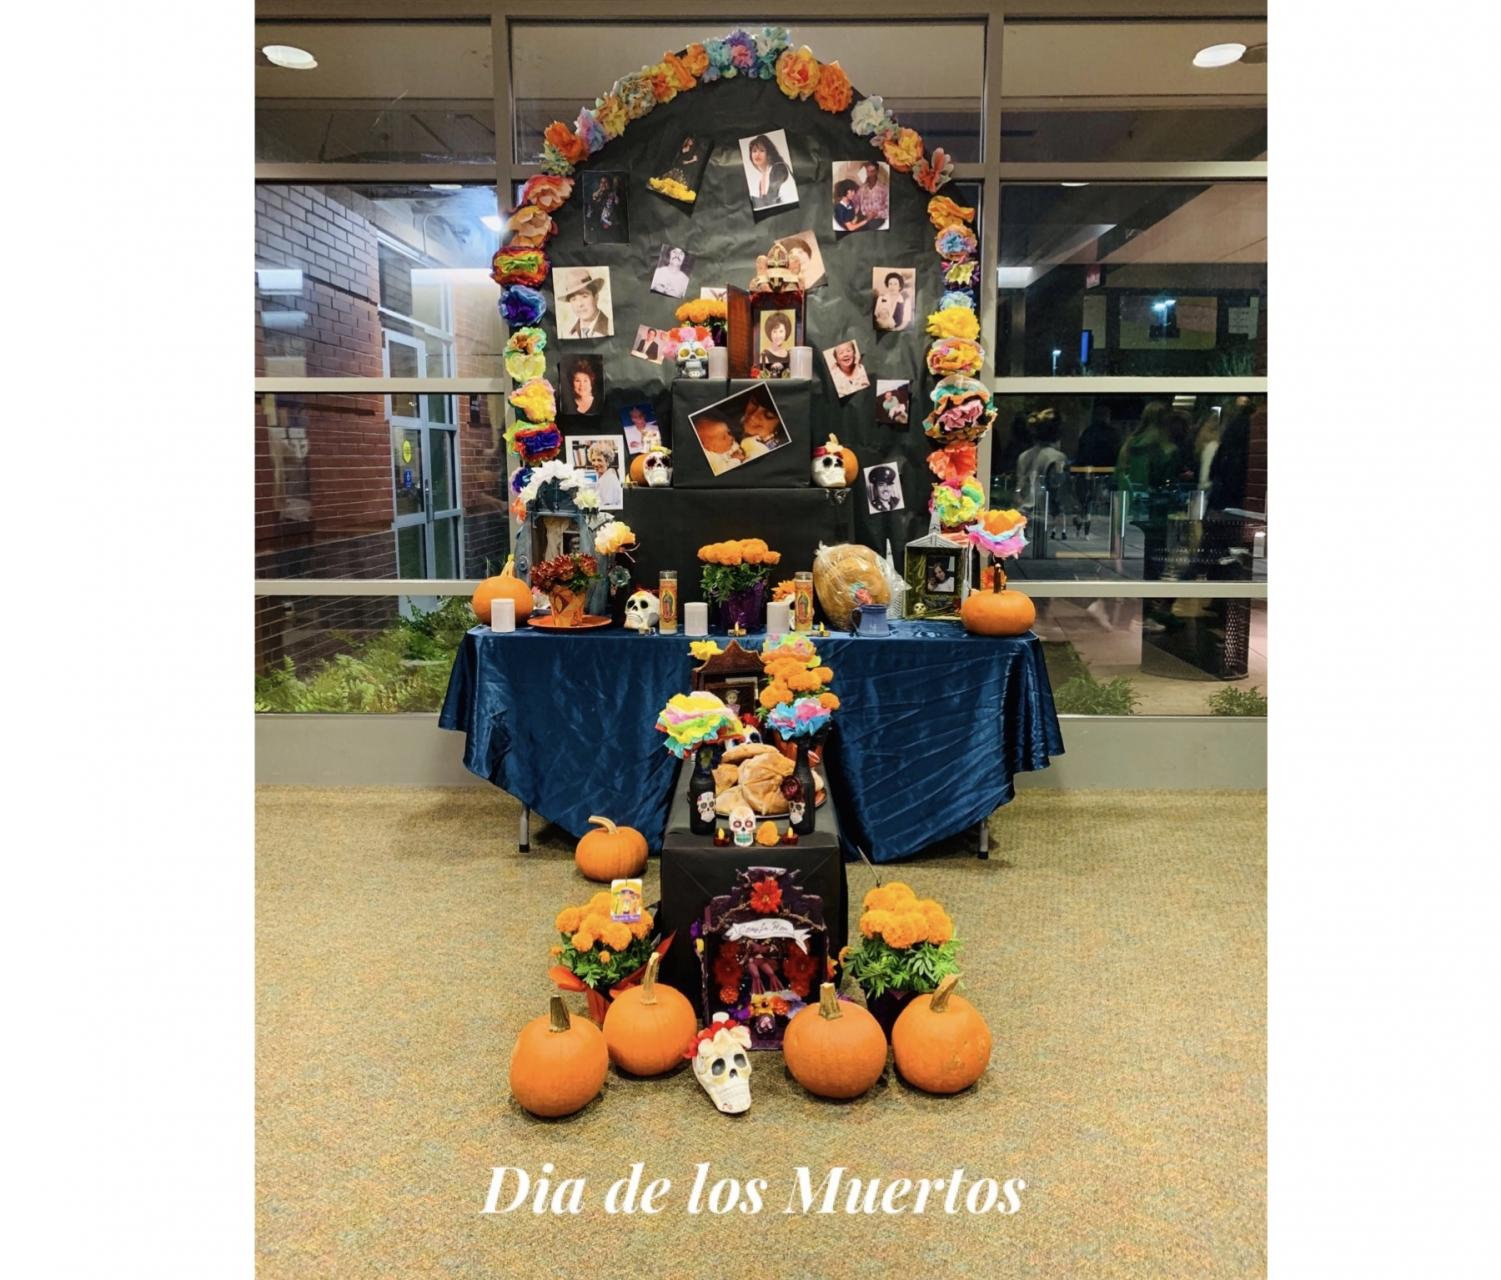 Ofreda featured at the Dia de los Muertos celebration. Guests were welcomed to added pictures to the ofrenda if they wanted to.